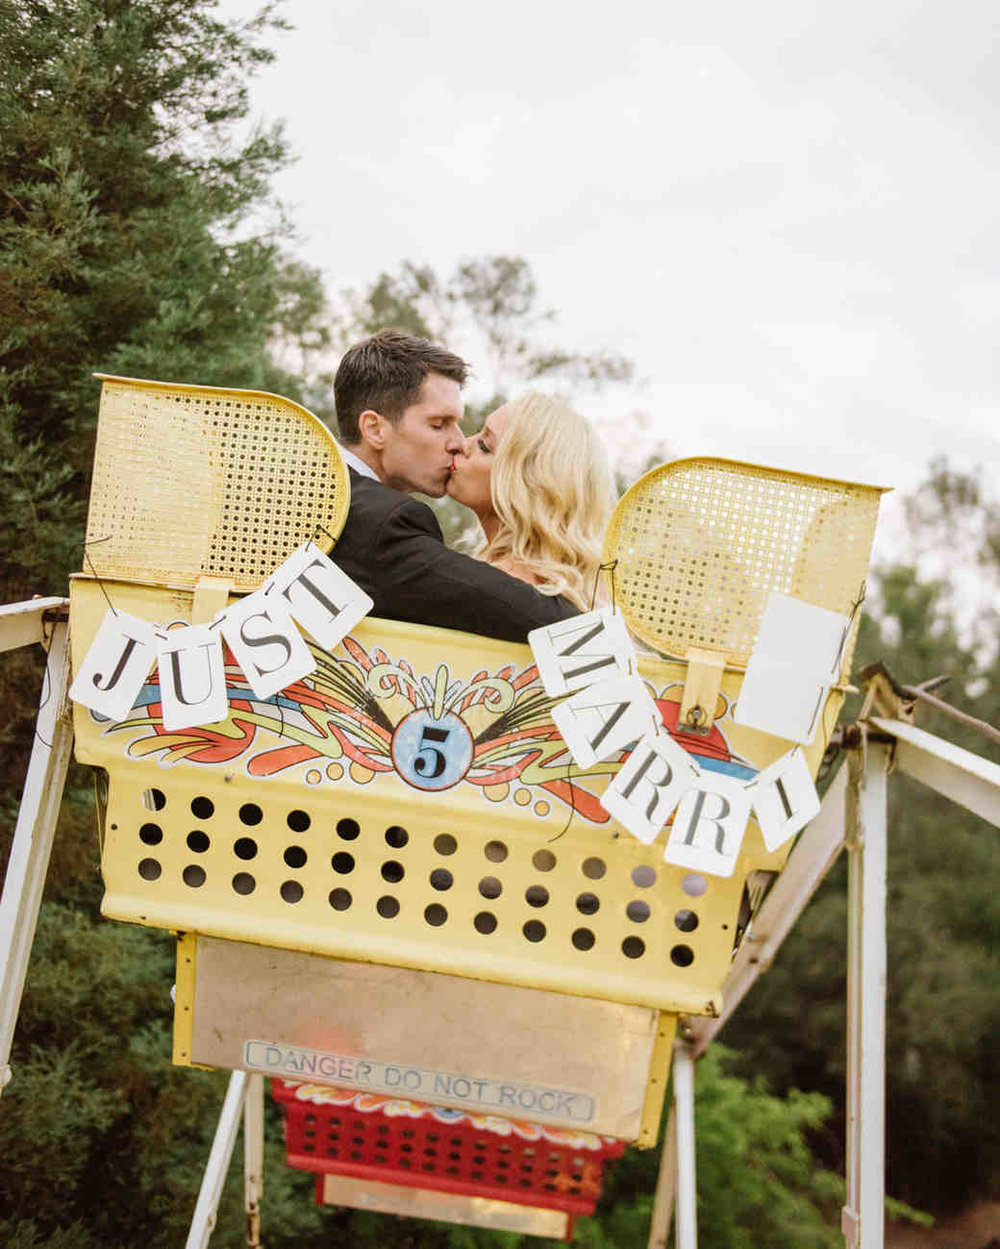 shannon-jon-wedding-couple-ferriswheel-0619-6238579-0117_vert.jpg